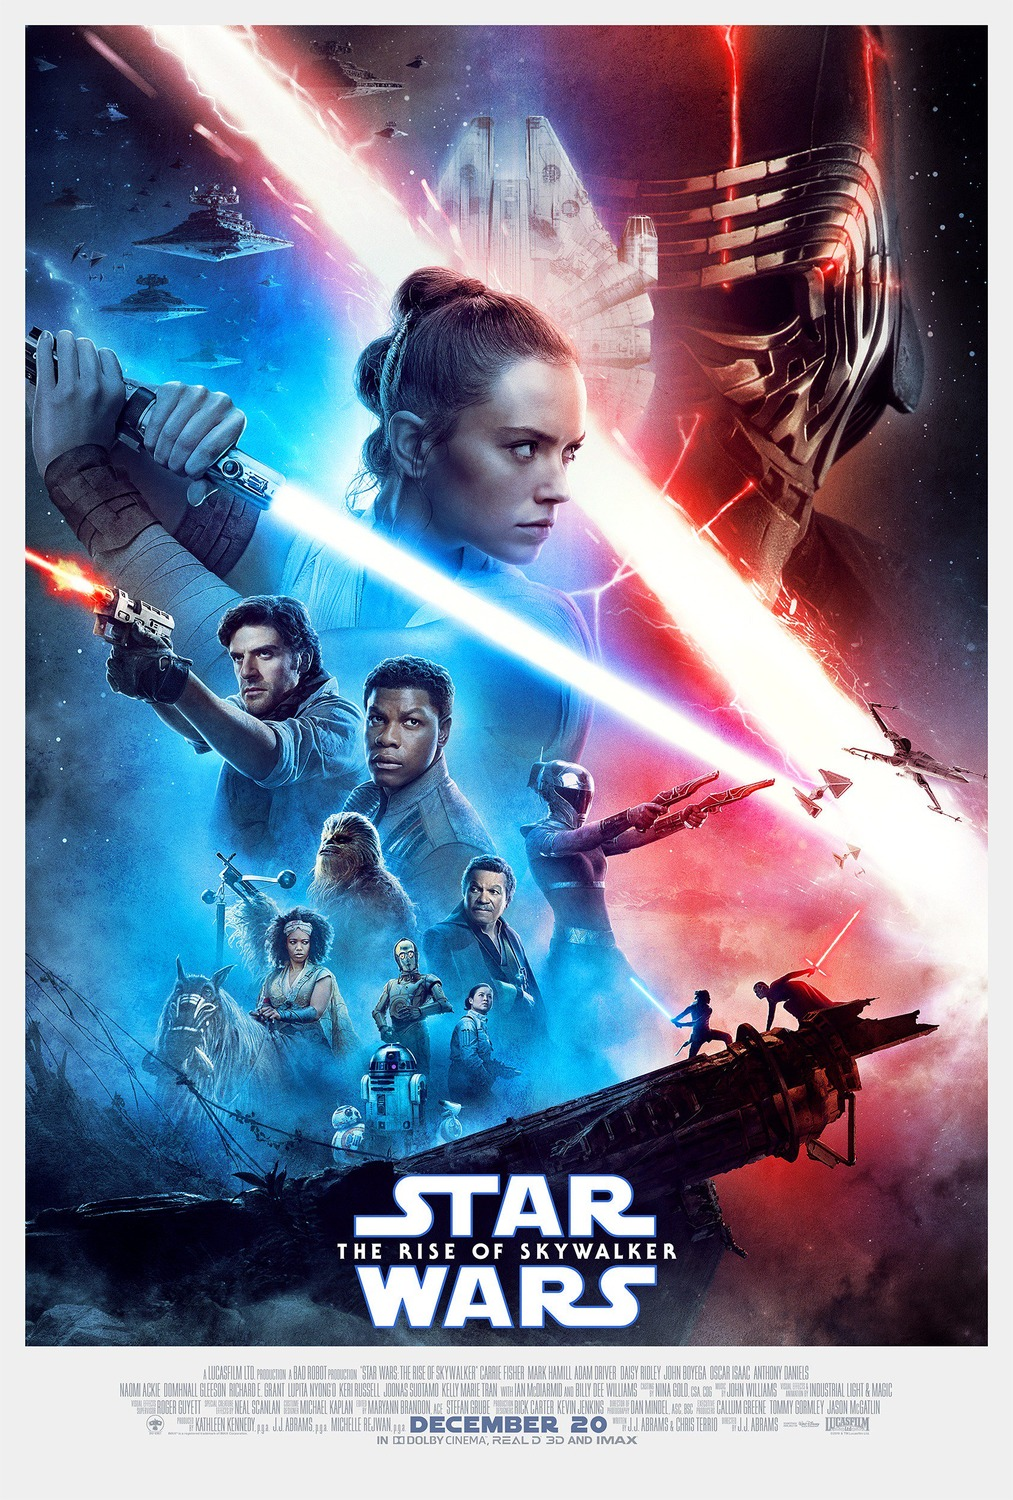 Star Wars Episode IX – The Rise Of Skywalker review: It ends here